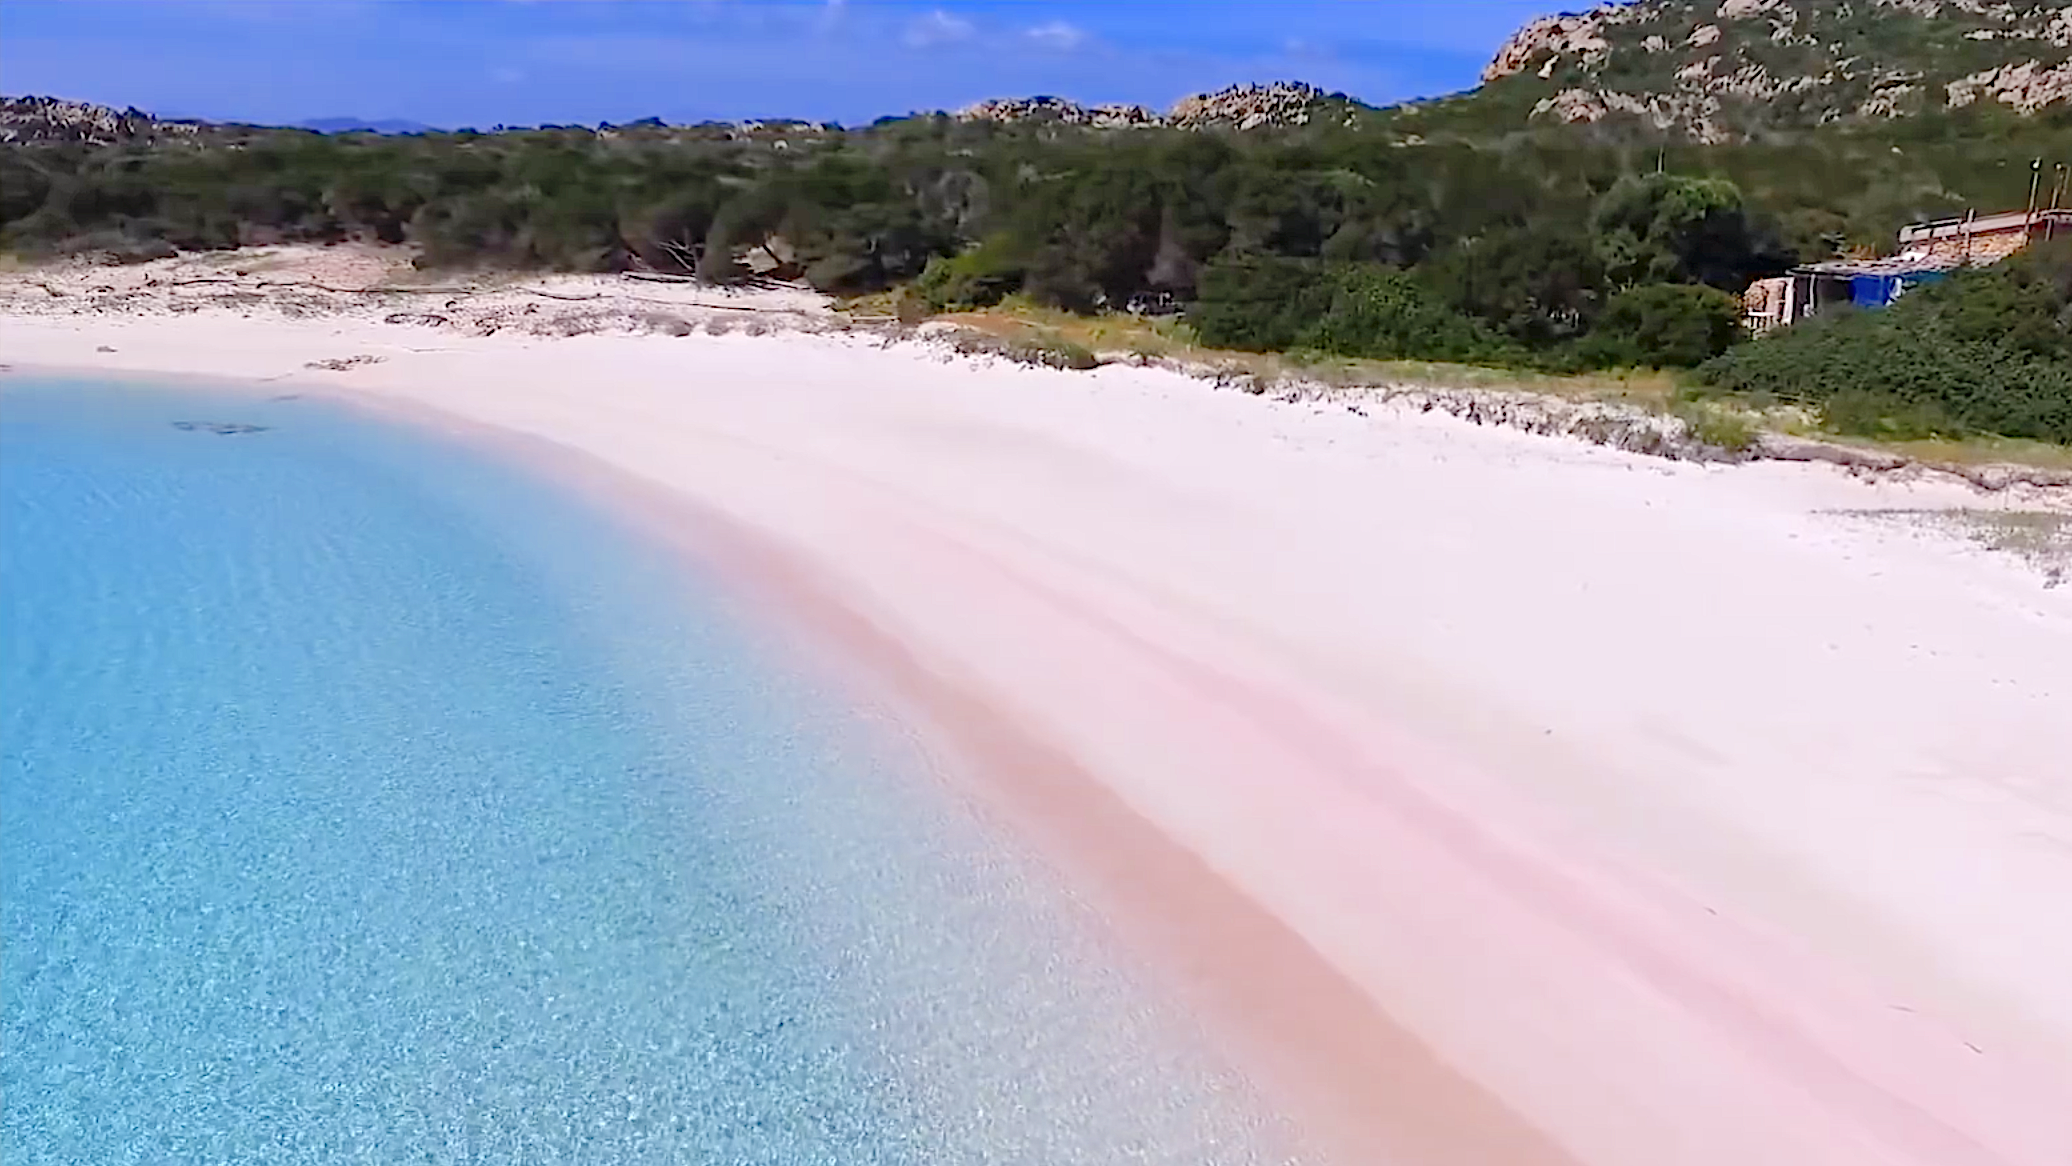 The pink beach of Budelli